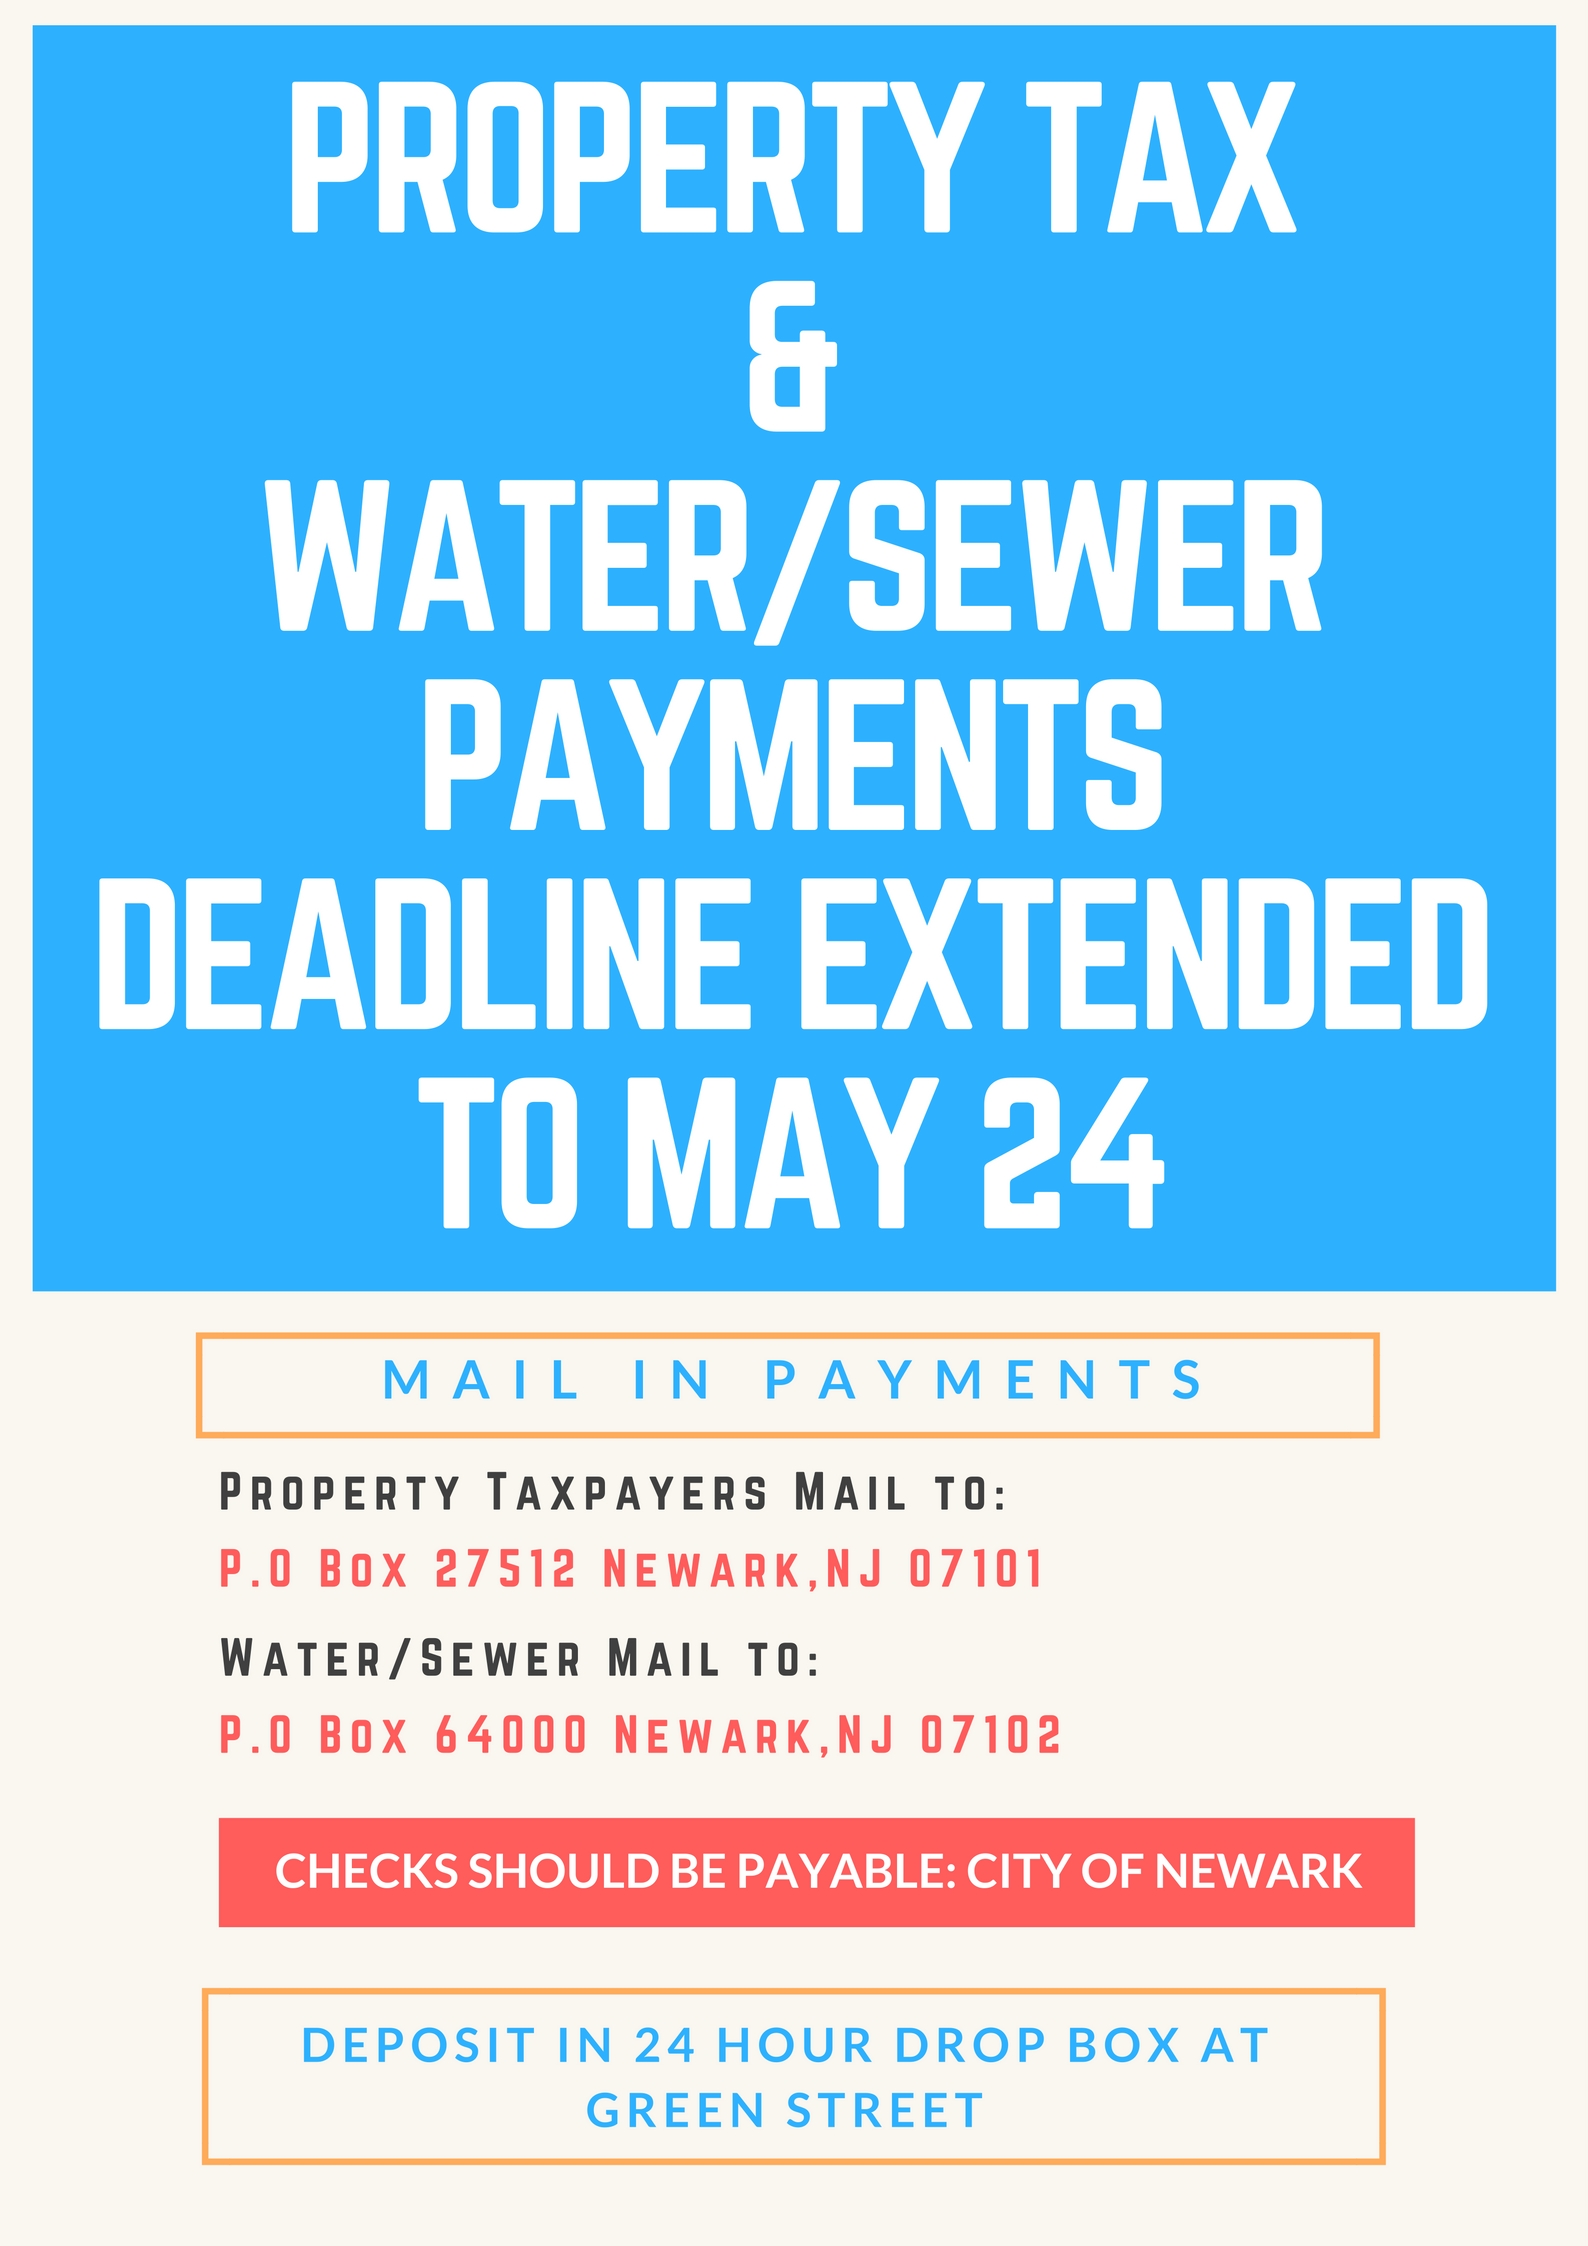 News Property Tax And Watersewer Payments Deadline Extended To May 24